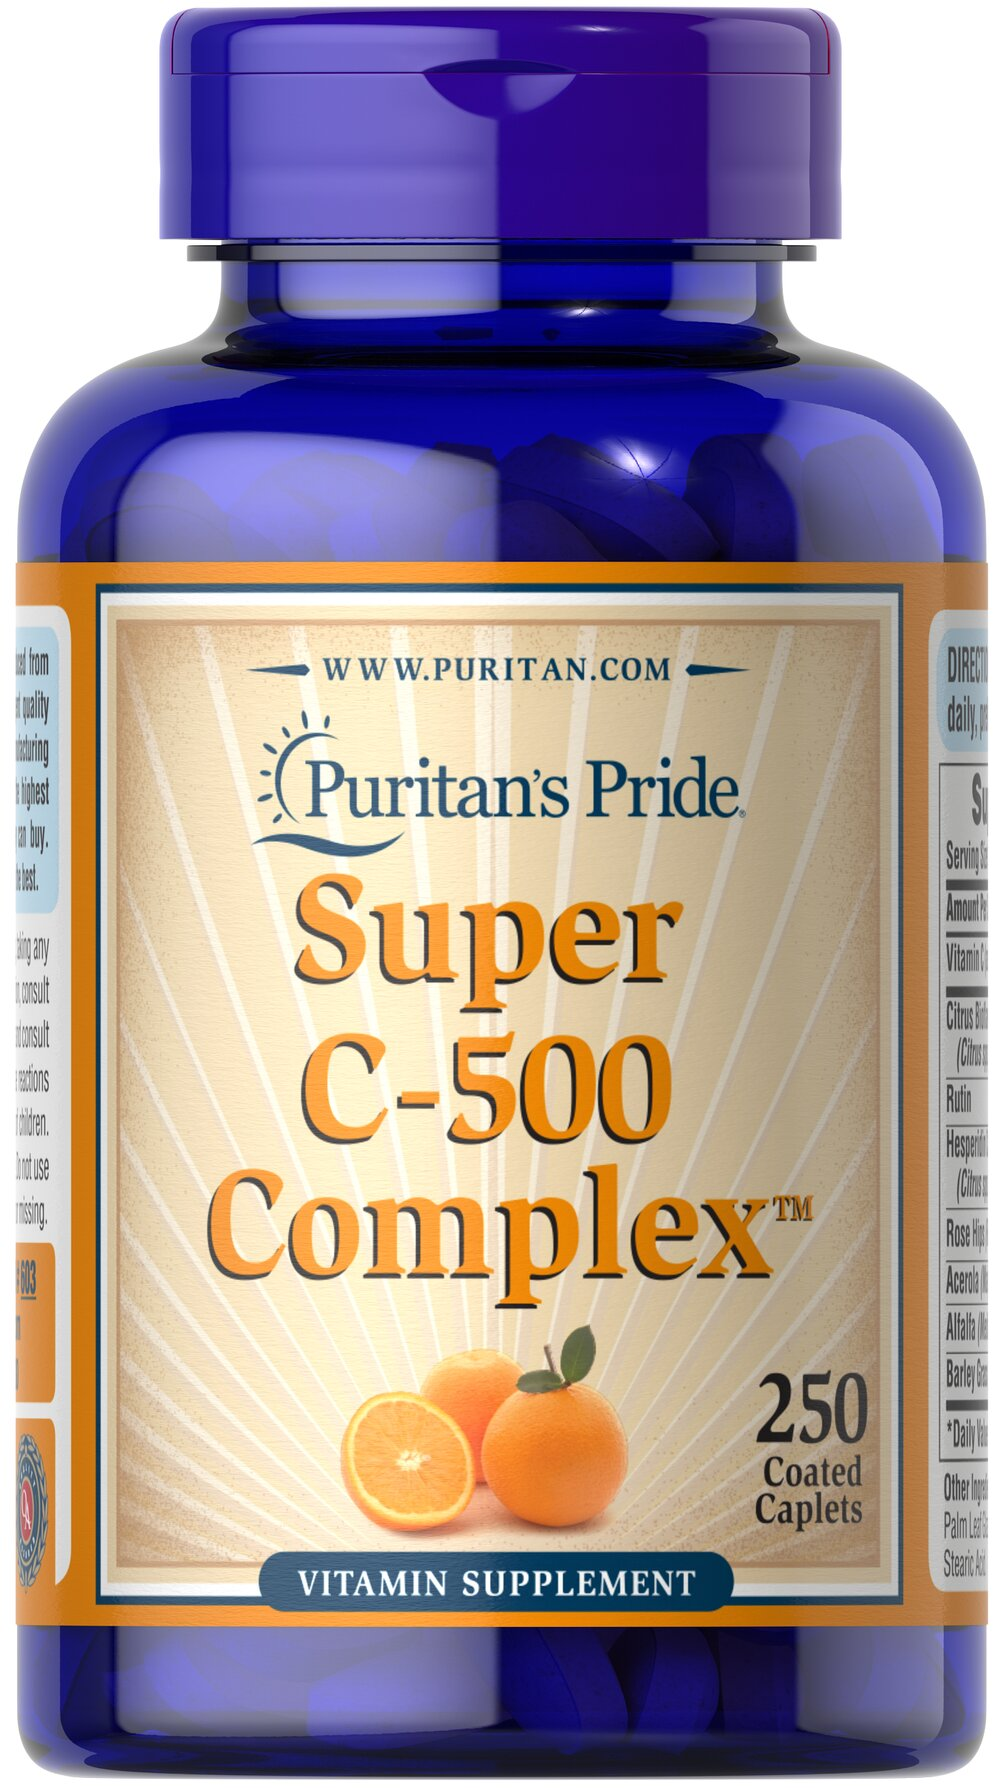 Vitamin C-500 Complex <p>Vitamin C  is essential to many functions in the body and is one of the leading vitamins for immune support.** Our C-complex includes potent Vitamin C as Ascorbic Acid. We also include Citrus Bioflavonoids, Rose Hips, Rutin, and Acerola.**</p><p>Offers superior antioxidant support.**</p><p>Supports healthy immune function and promotes well-being.**</p> 250 Coated Caplets 500 mg $26.99